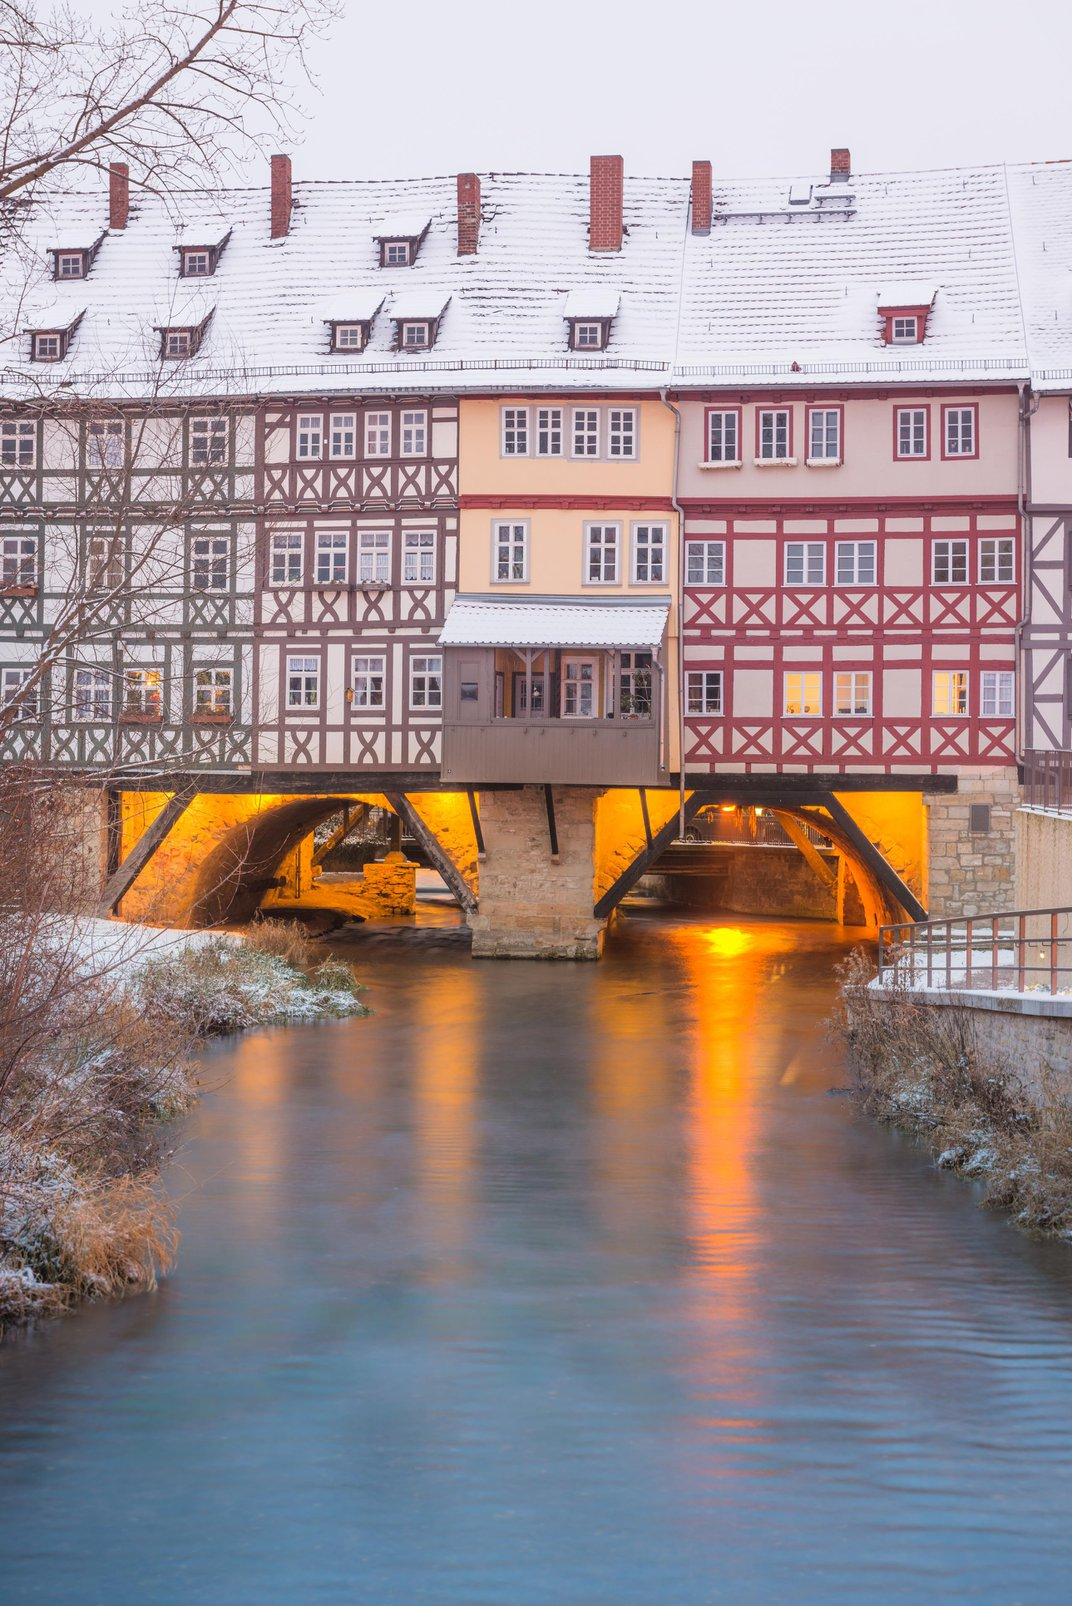 Could Erfurt Be Germany's Most Magical Christmas Town?